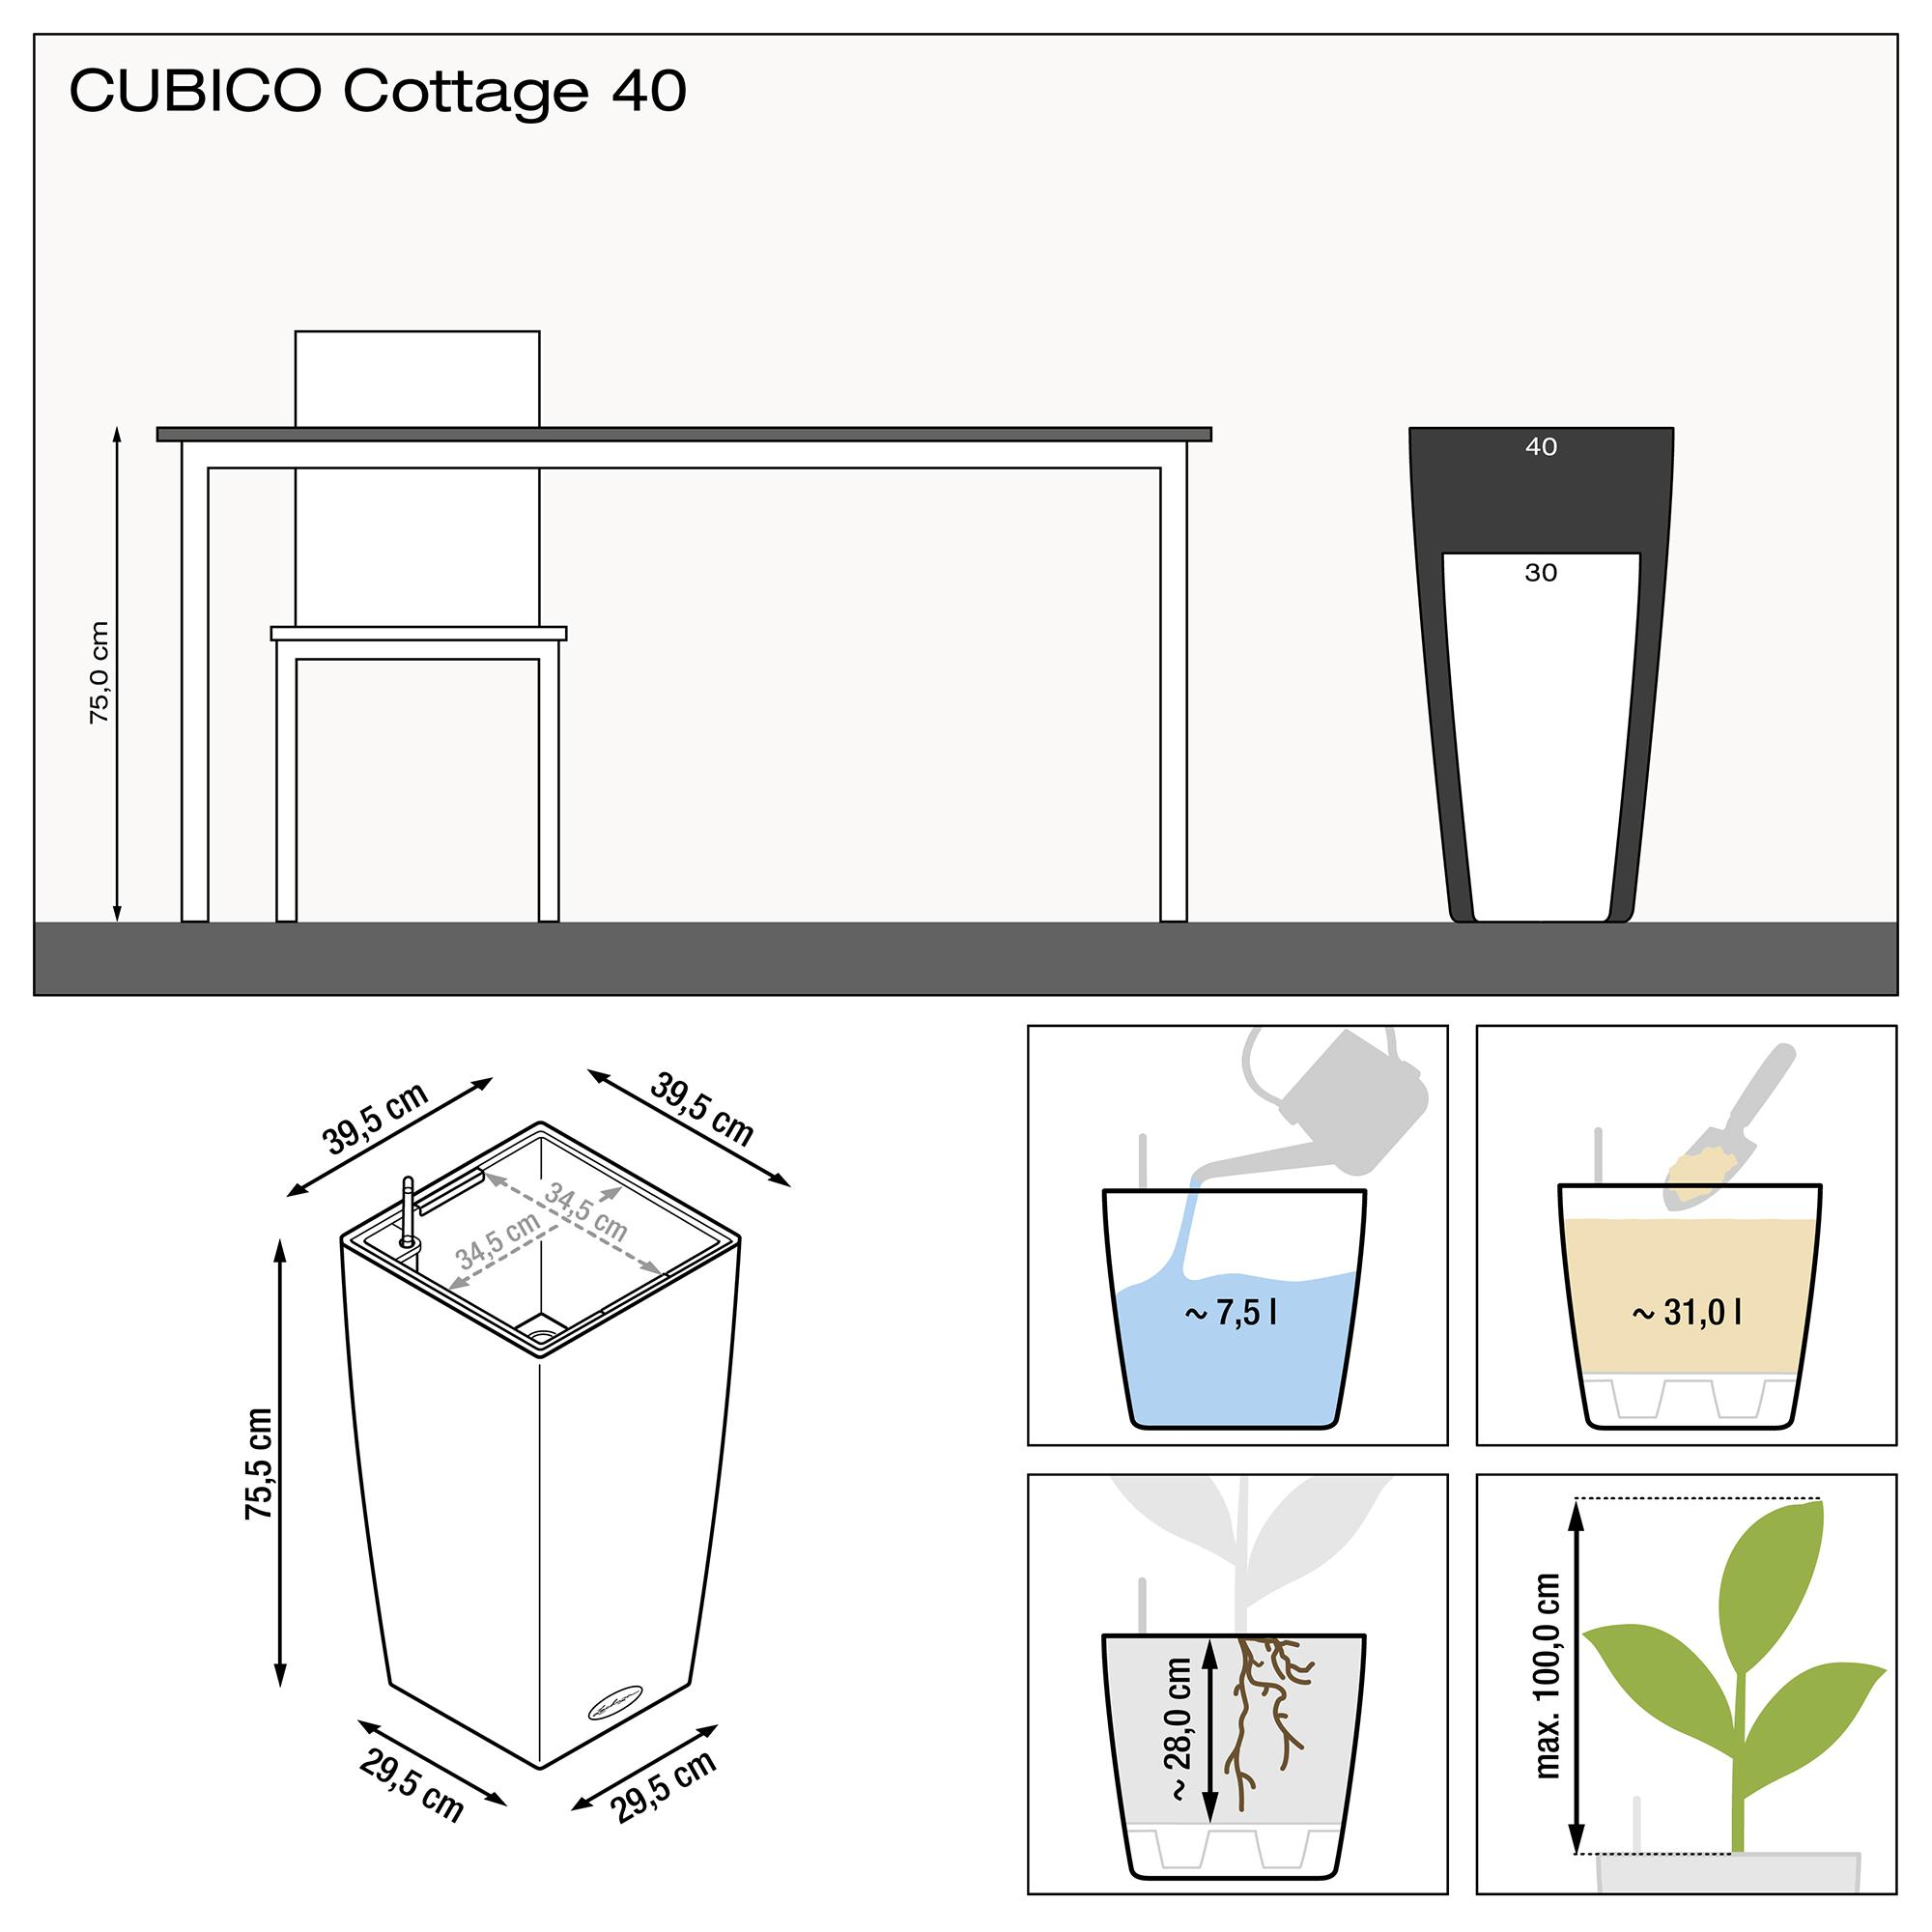 le_cubico-cottage40_product_addi_nz